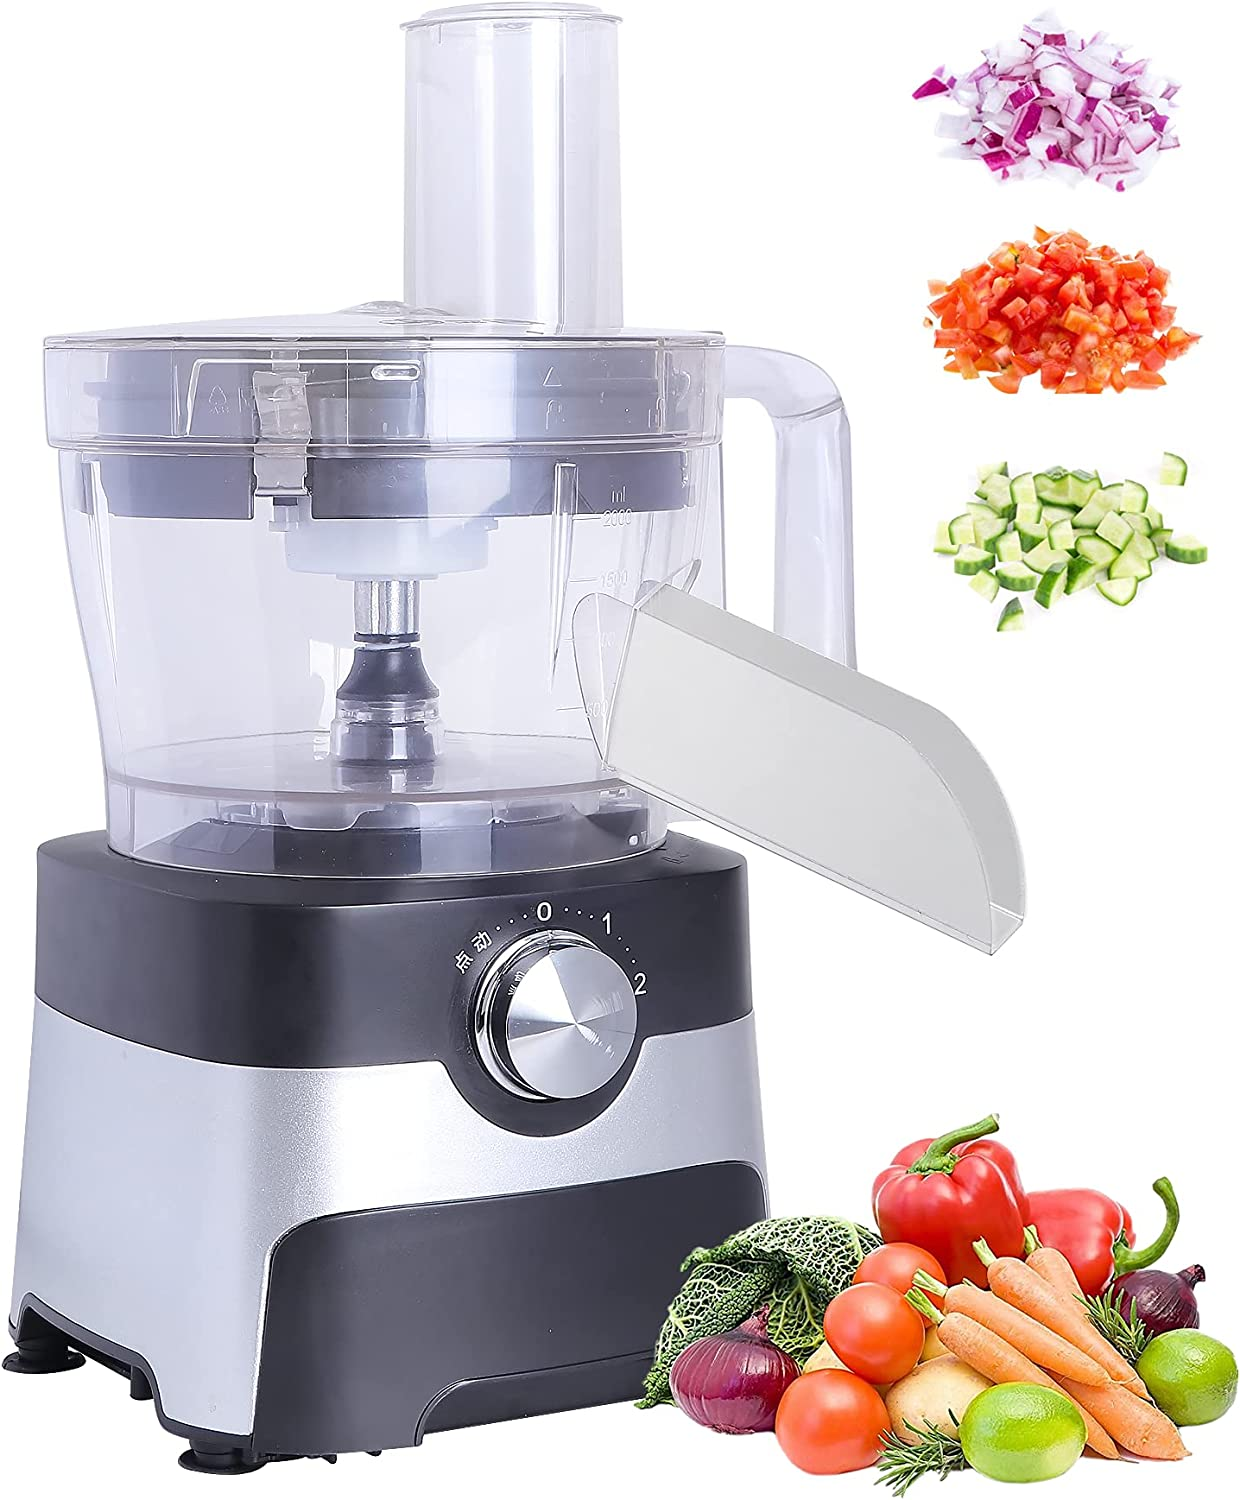 Commercial Vegetable Fruit Dicer 130lb Tomatoe h Onions Max wholesale 49% OFF Electric